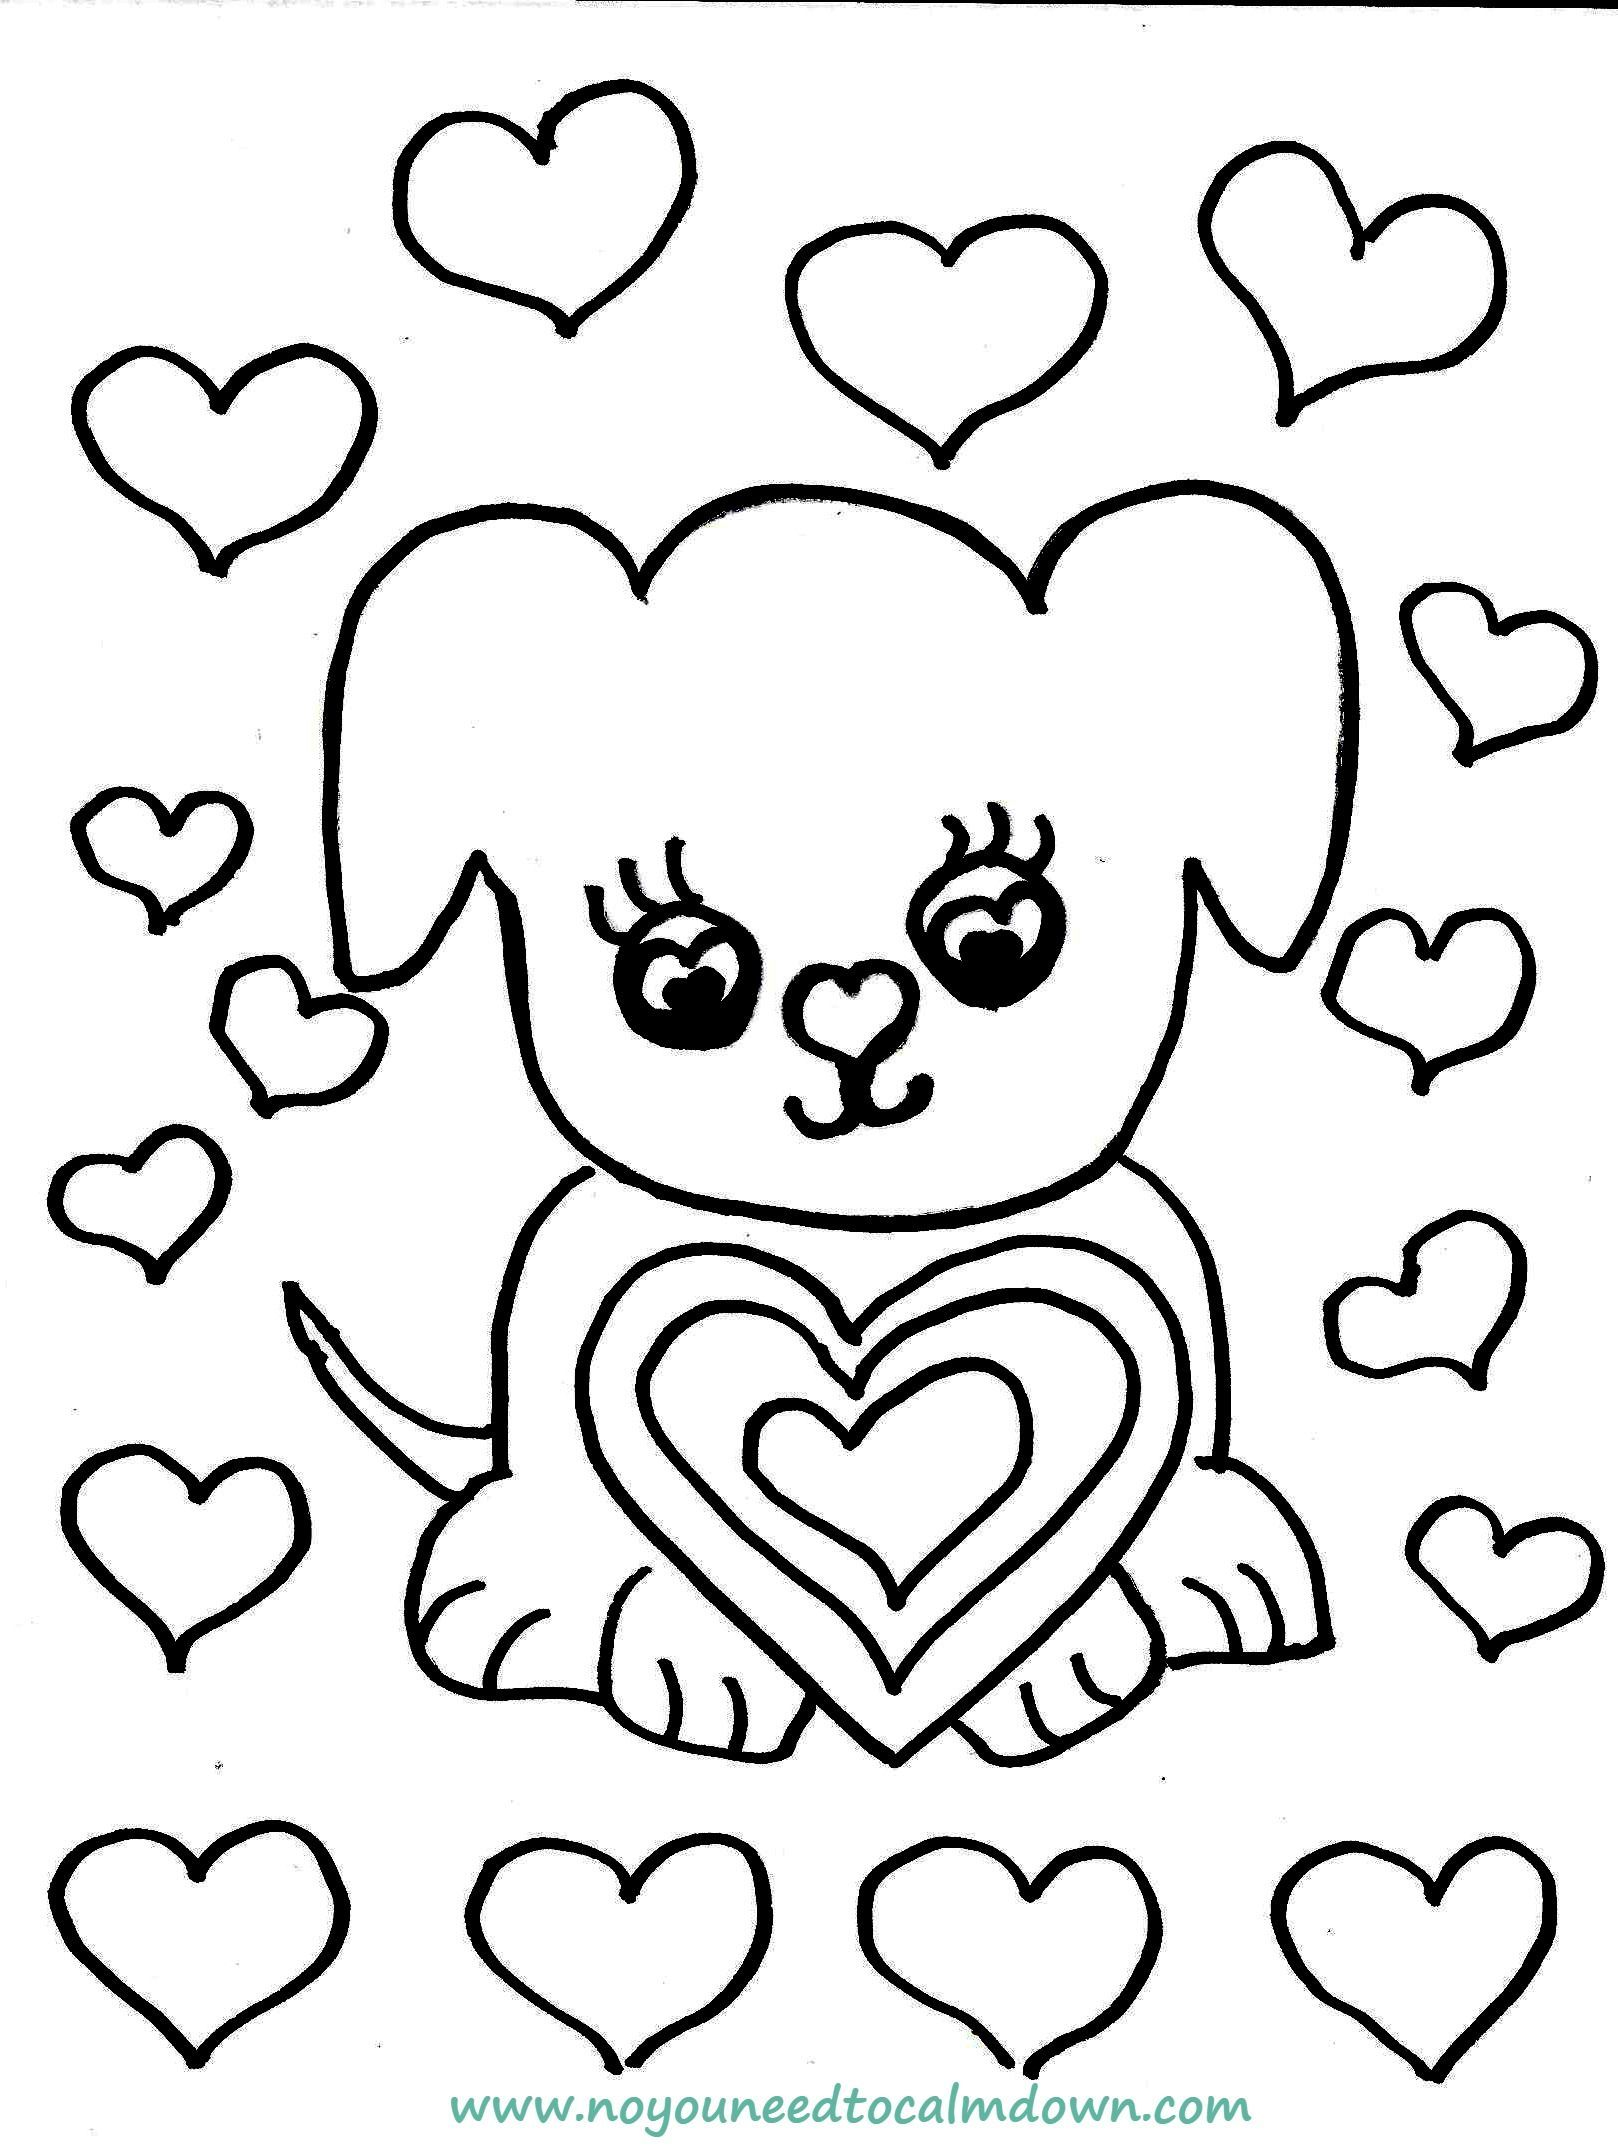 Cute Dog Valentine S Day Coloring Page Free Printable Valentines Day Coloring Page Valentine Coloring Pages Cute Coloring Pages